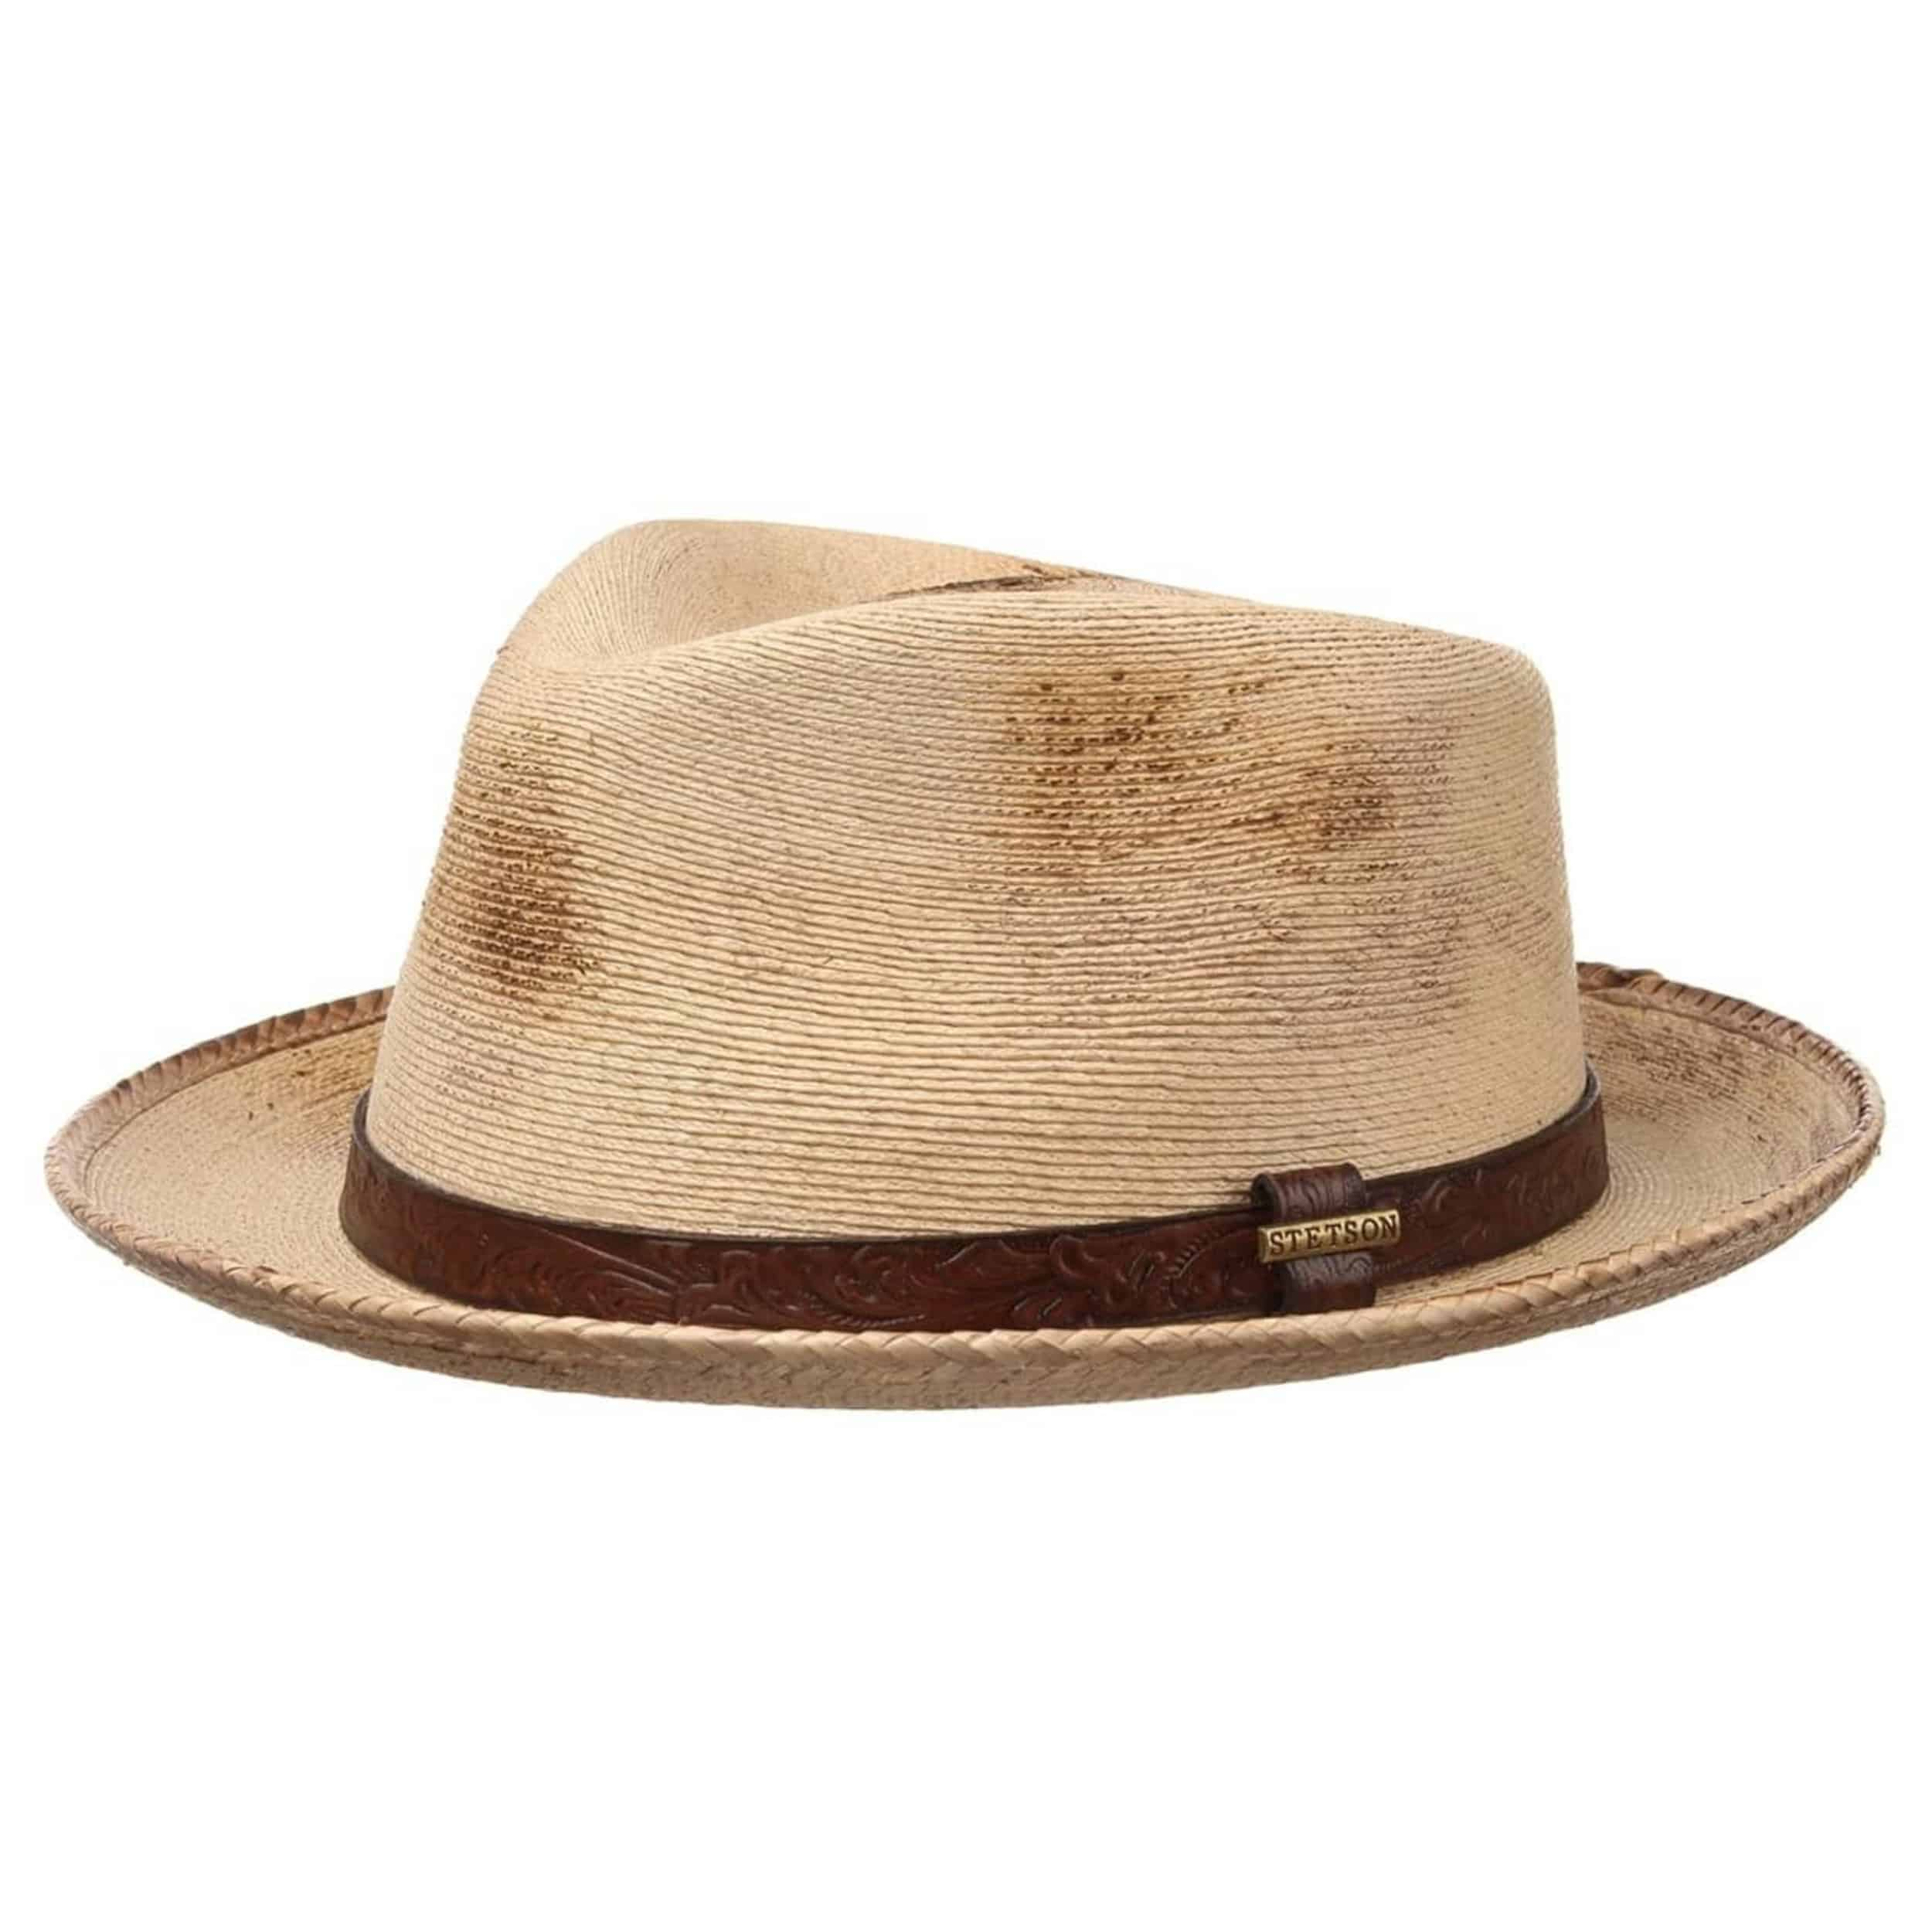 Straw Hats from Village Hats. Here is our selection of straw hats in various straw materials including raffia straw hats, Milan straw hats, shantung straw hats, grasses, as well as Panama straw (Cardoluvica Palmata, known as toquilla straw to the Ecuadorian weavers).